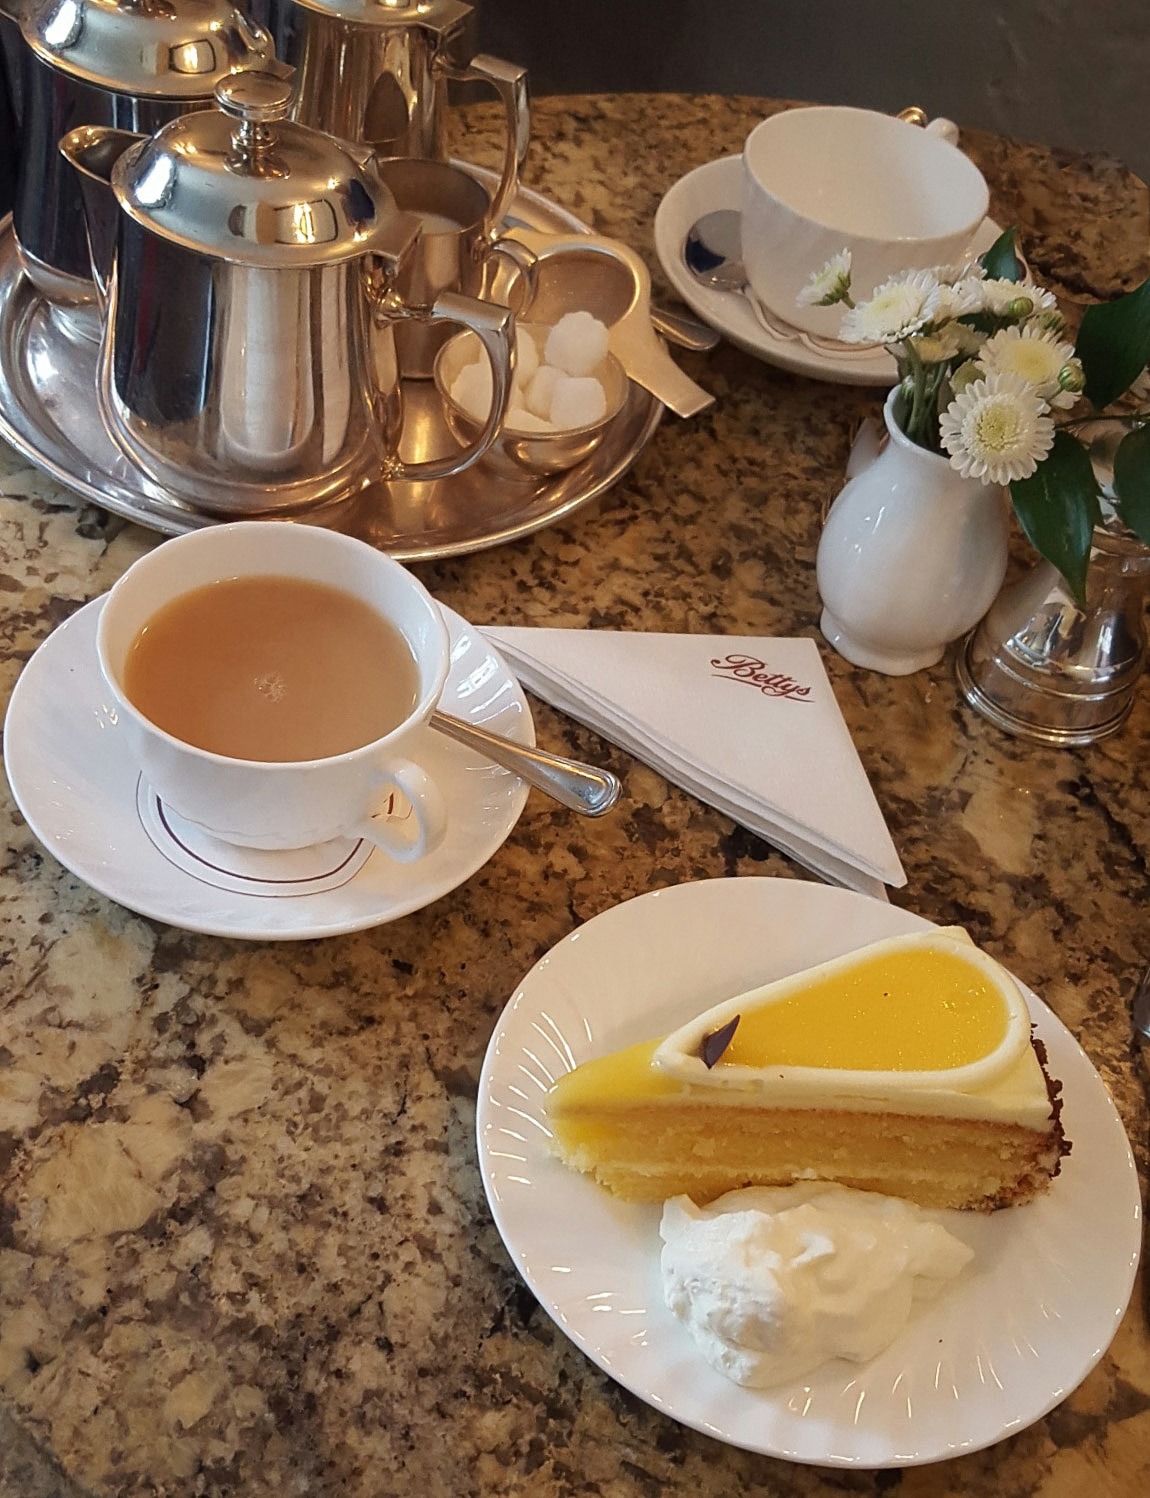 Tea and a delicious lemon cake with a dollop of cream